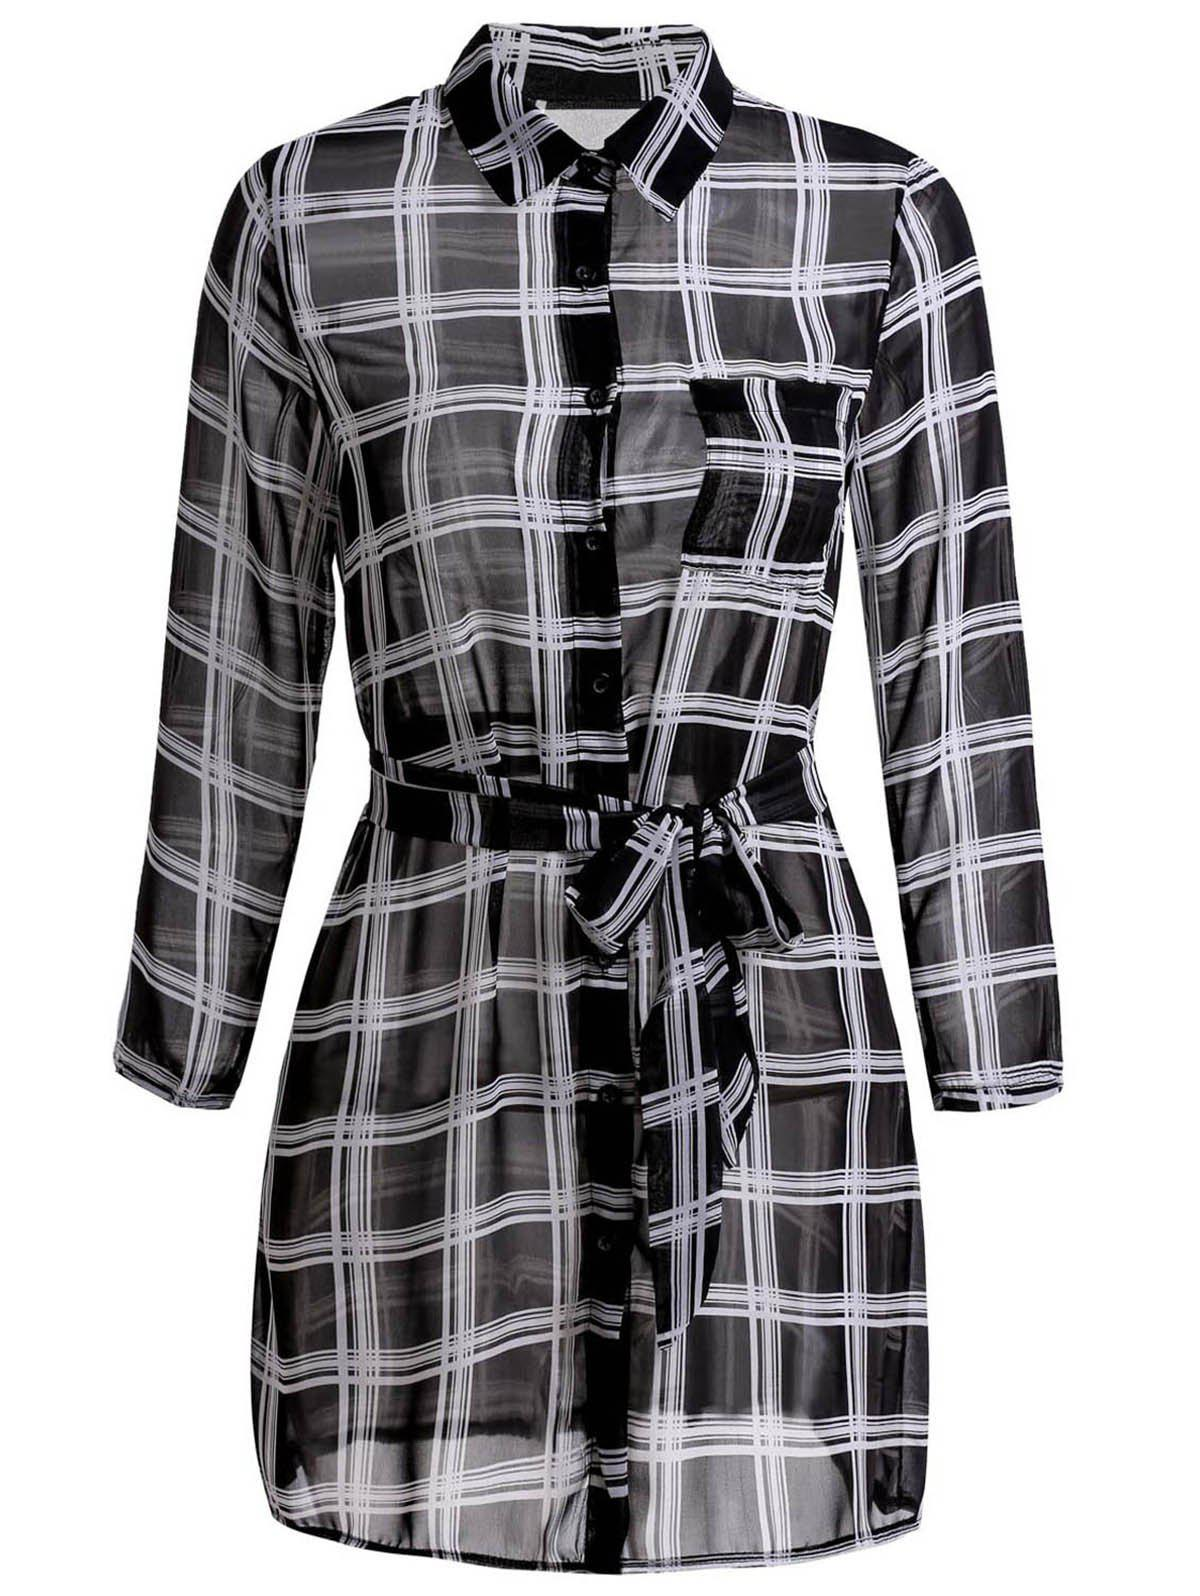 Concise Plaid Printed Shirt Collar Waist Tied Mini Dress For Women